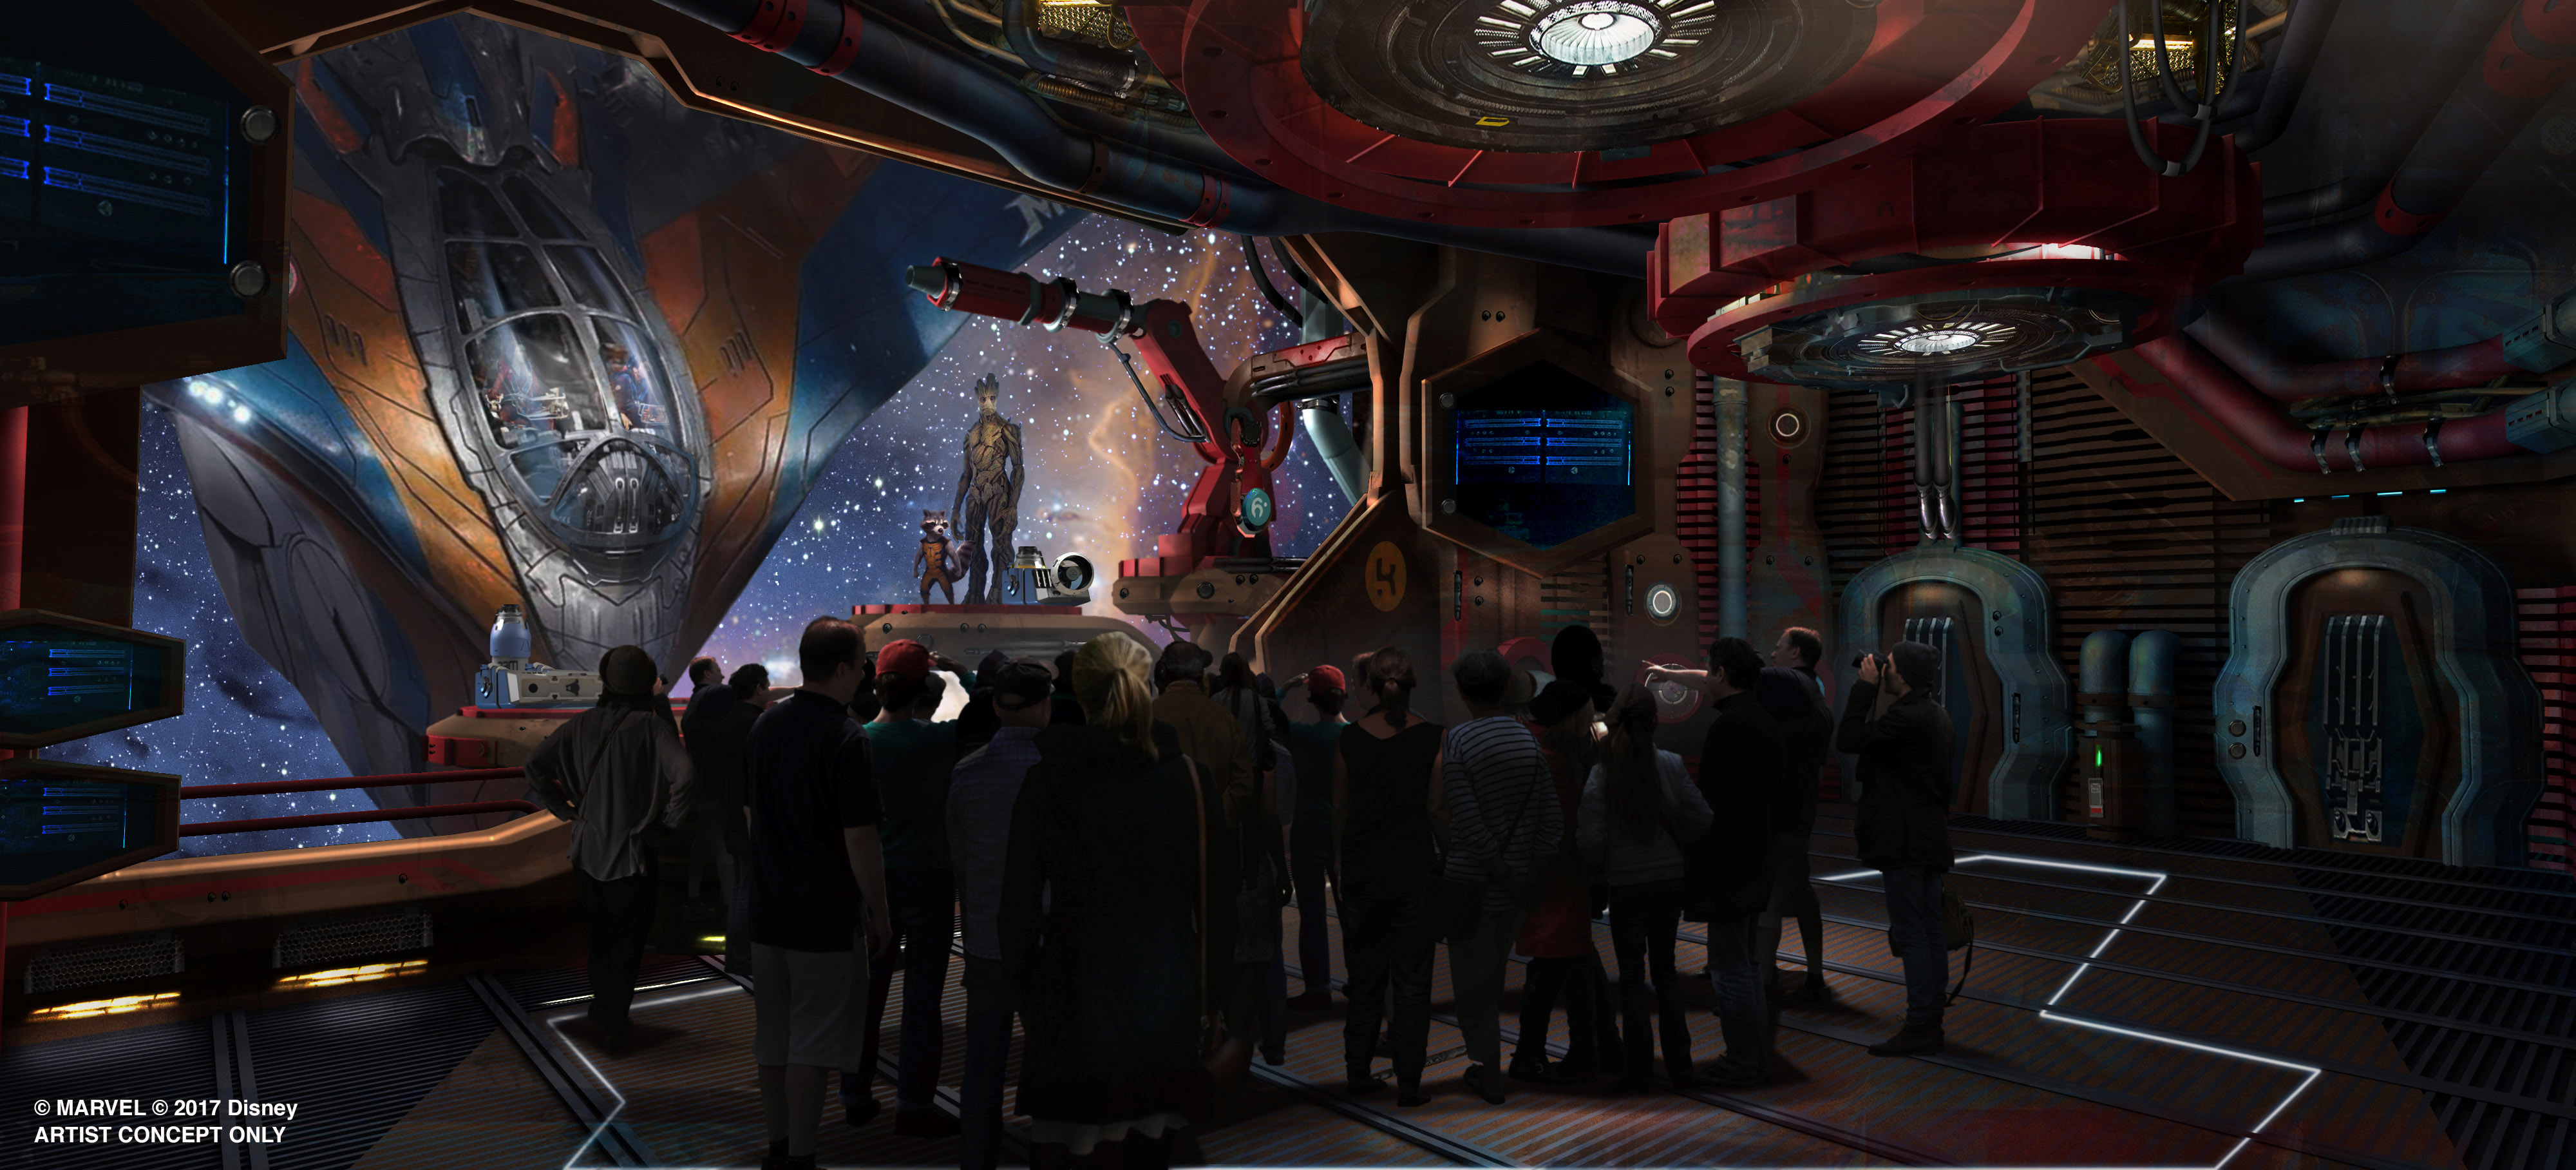 Guardians of the Galaxy ride at Walt Disney World